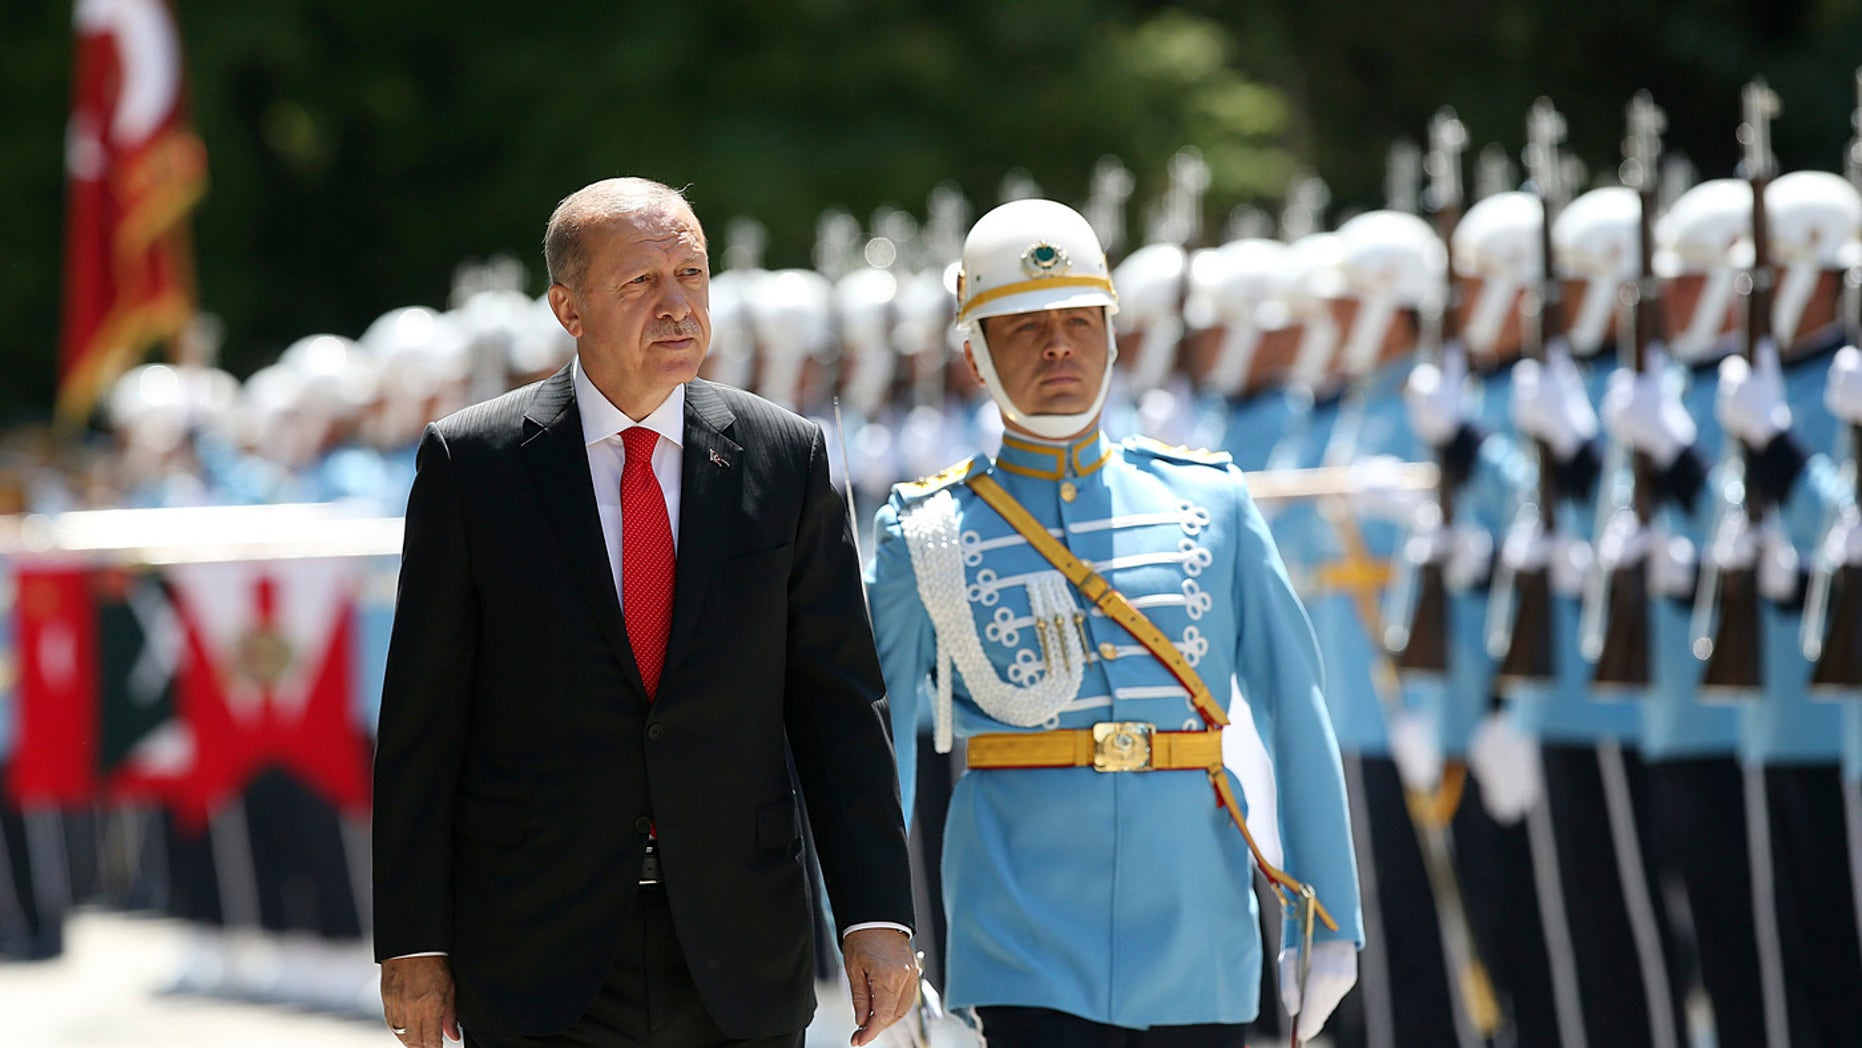 Turkey's President Recep Tayyip Erdogan inspects an honour guard as he arrives at the parliament in Ankara, Turkey to attend opening session of the new parliament in Ankara, Turkey, Saturday, July 7, 2018.